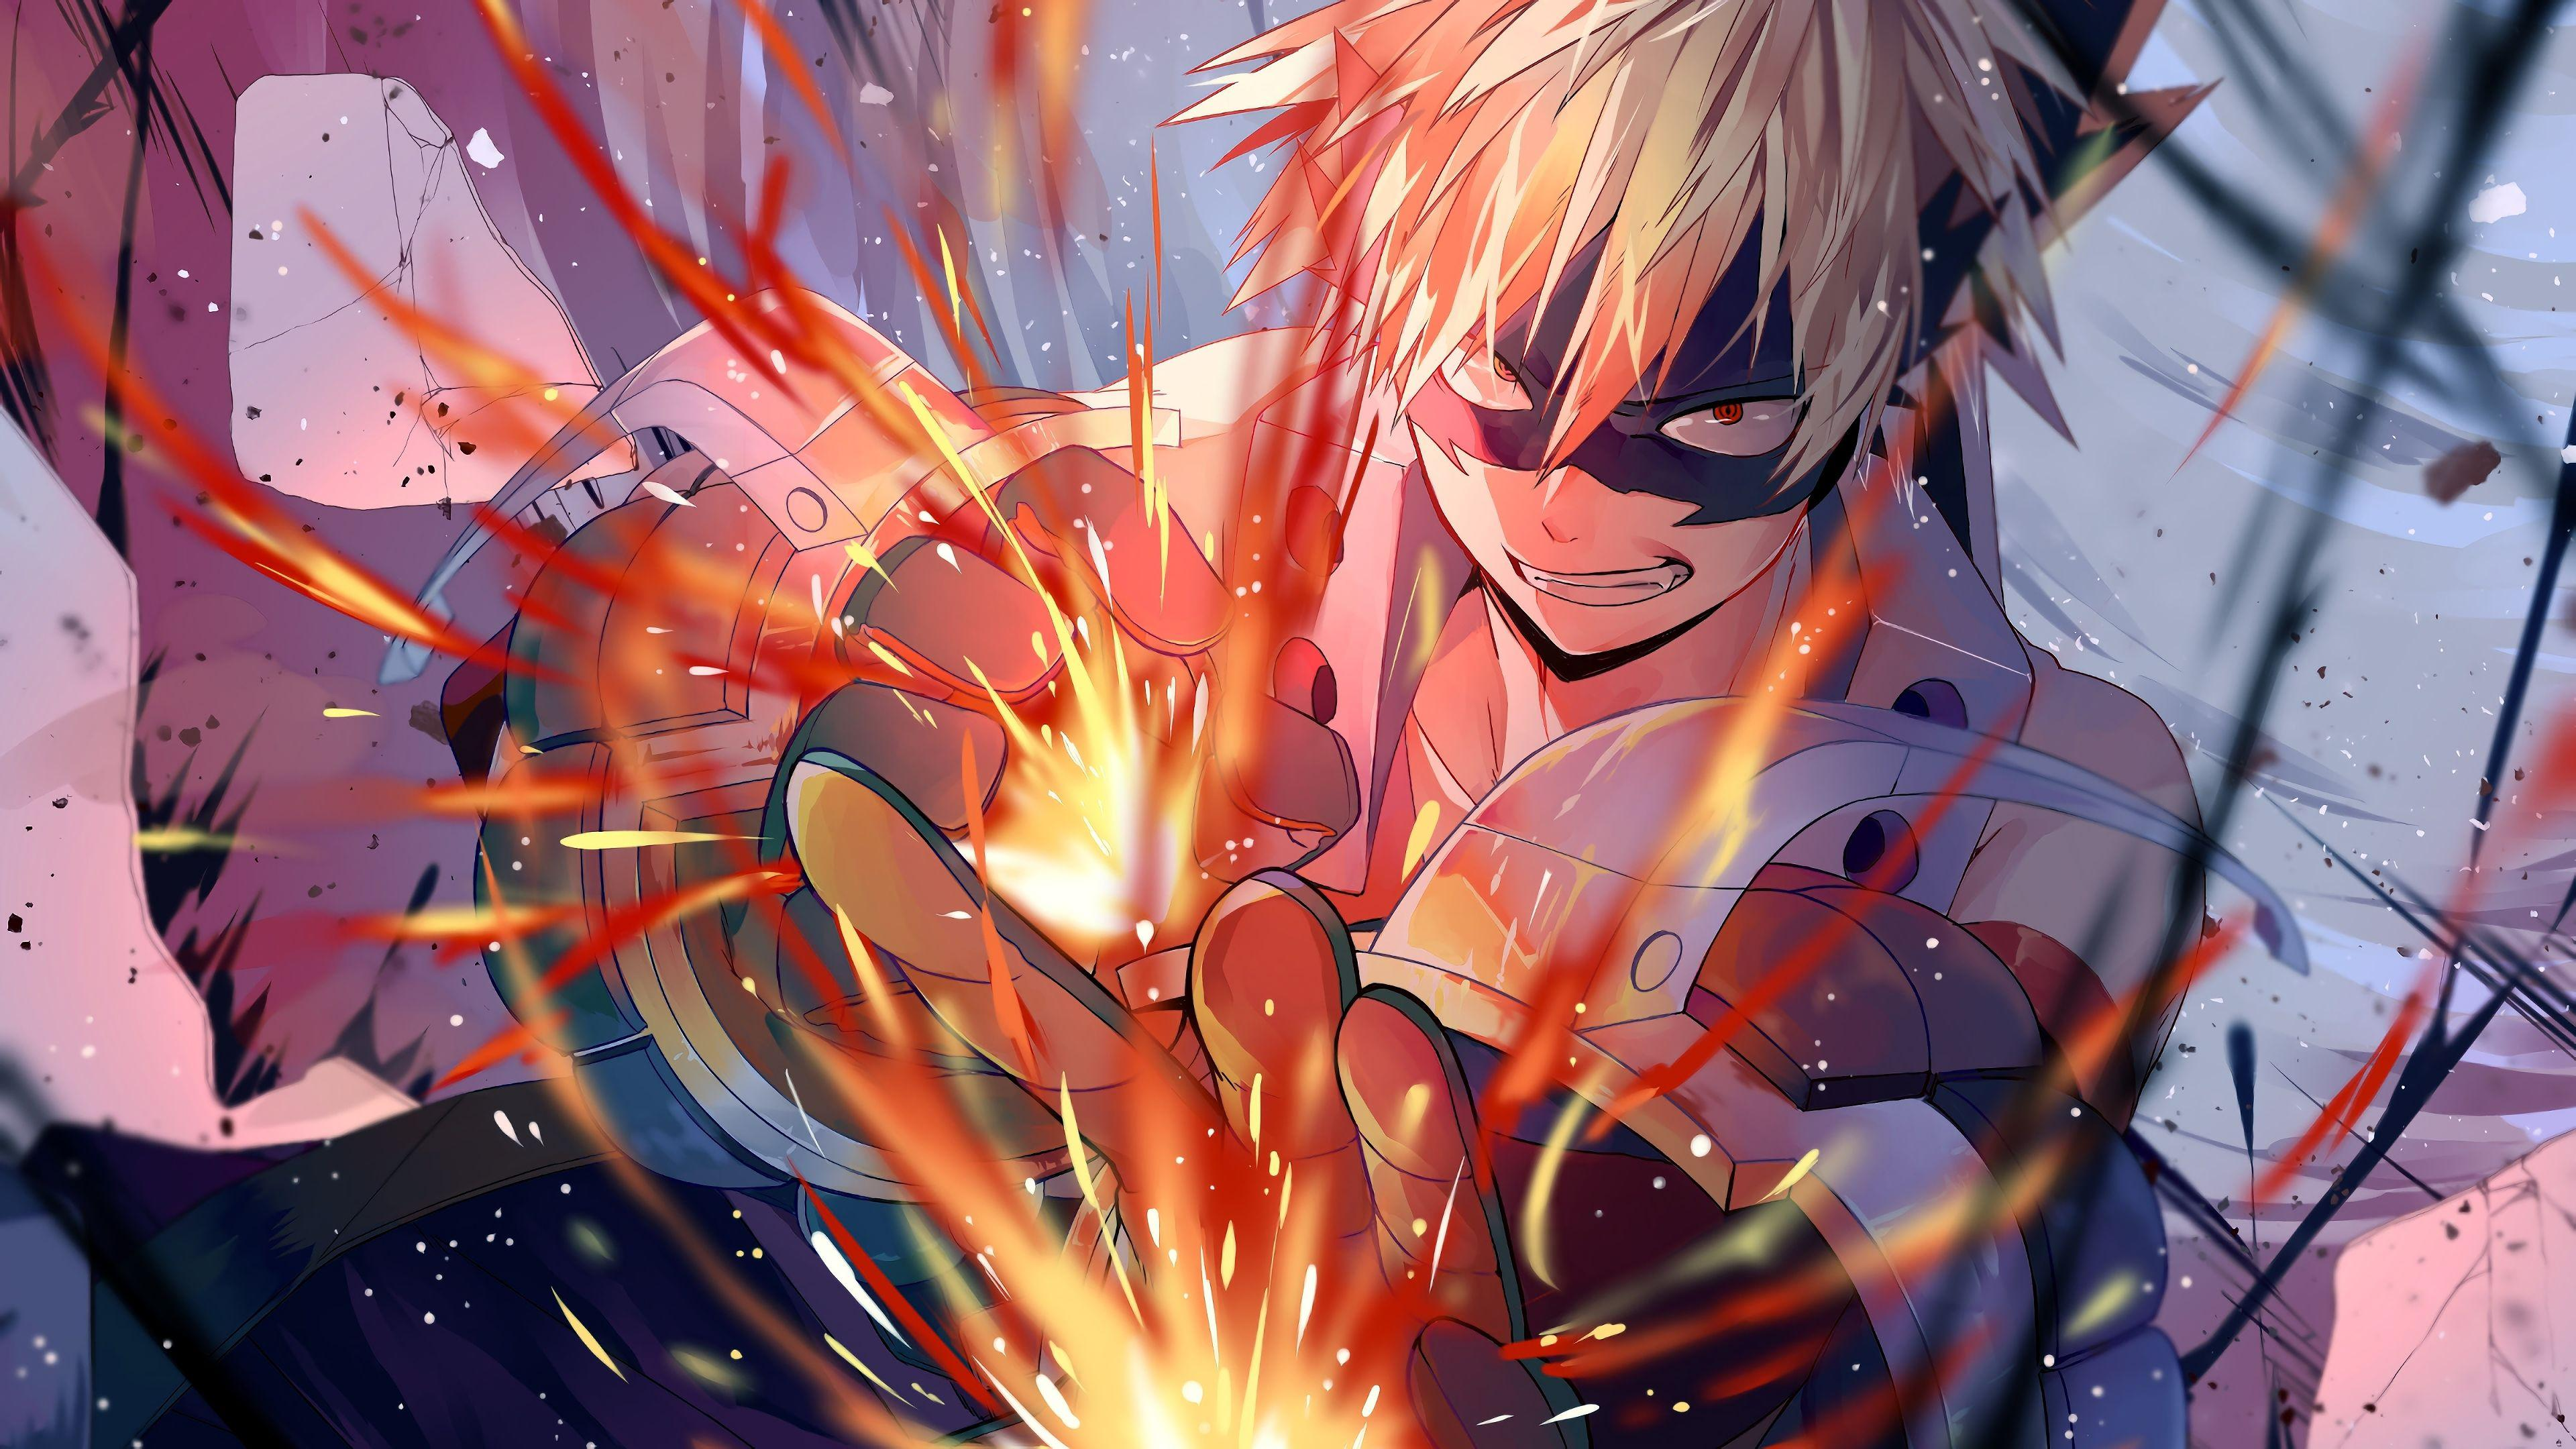 Anime My Hero Academia Bakugo Wallpapers Wallpaper Cave Discover 105 free bakugou png images with transparent backgrounds. anime my hero academia bakugo